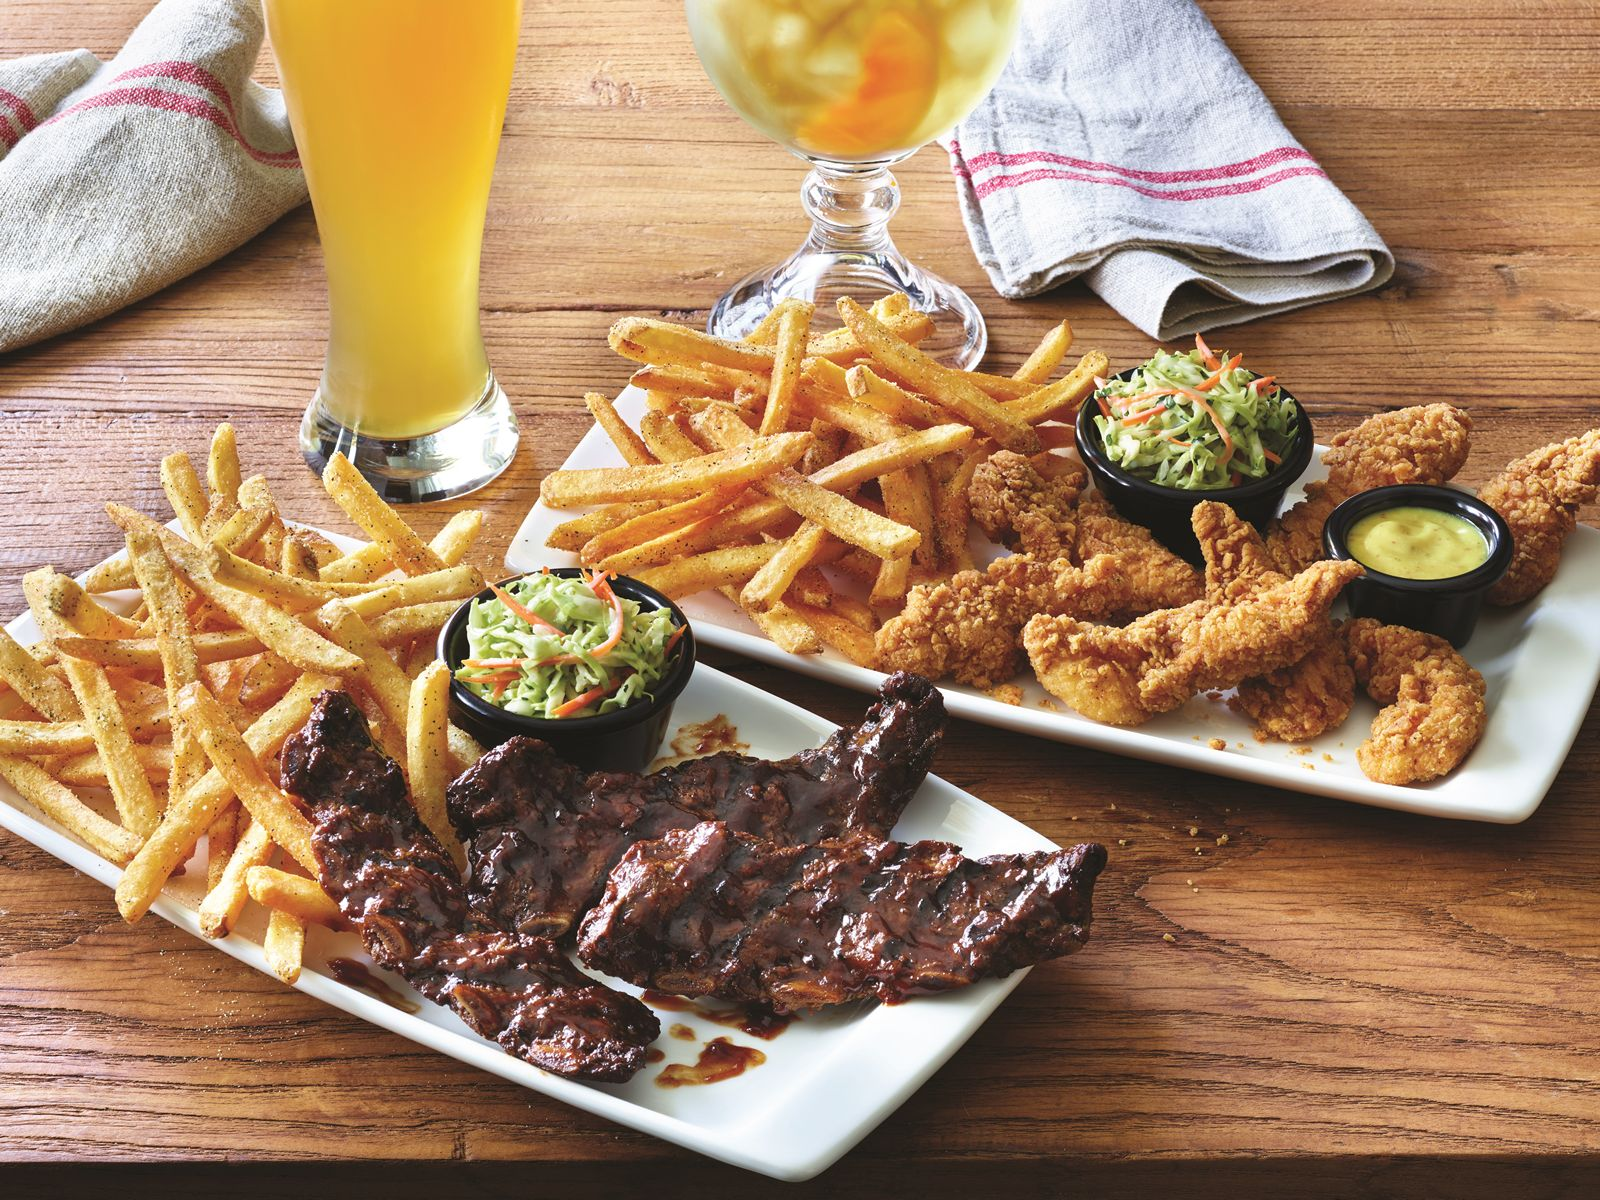 Applebee's in Albuquerque Brings Back Famous Riblets by Popular Demand; Guests Can Choose All-You-Can-Eat Riblets or All-You-Can-Eat Chicken Tenders with Endless Classic Fries, All Day, Every Day for Only $12.99